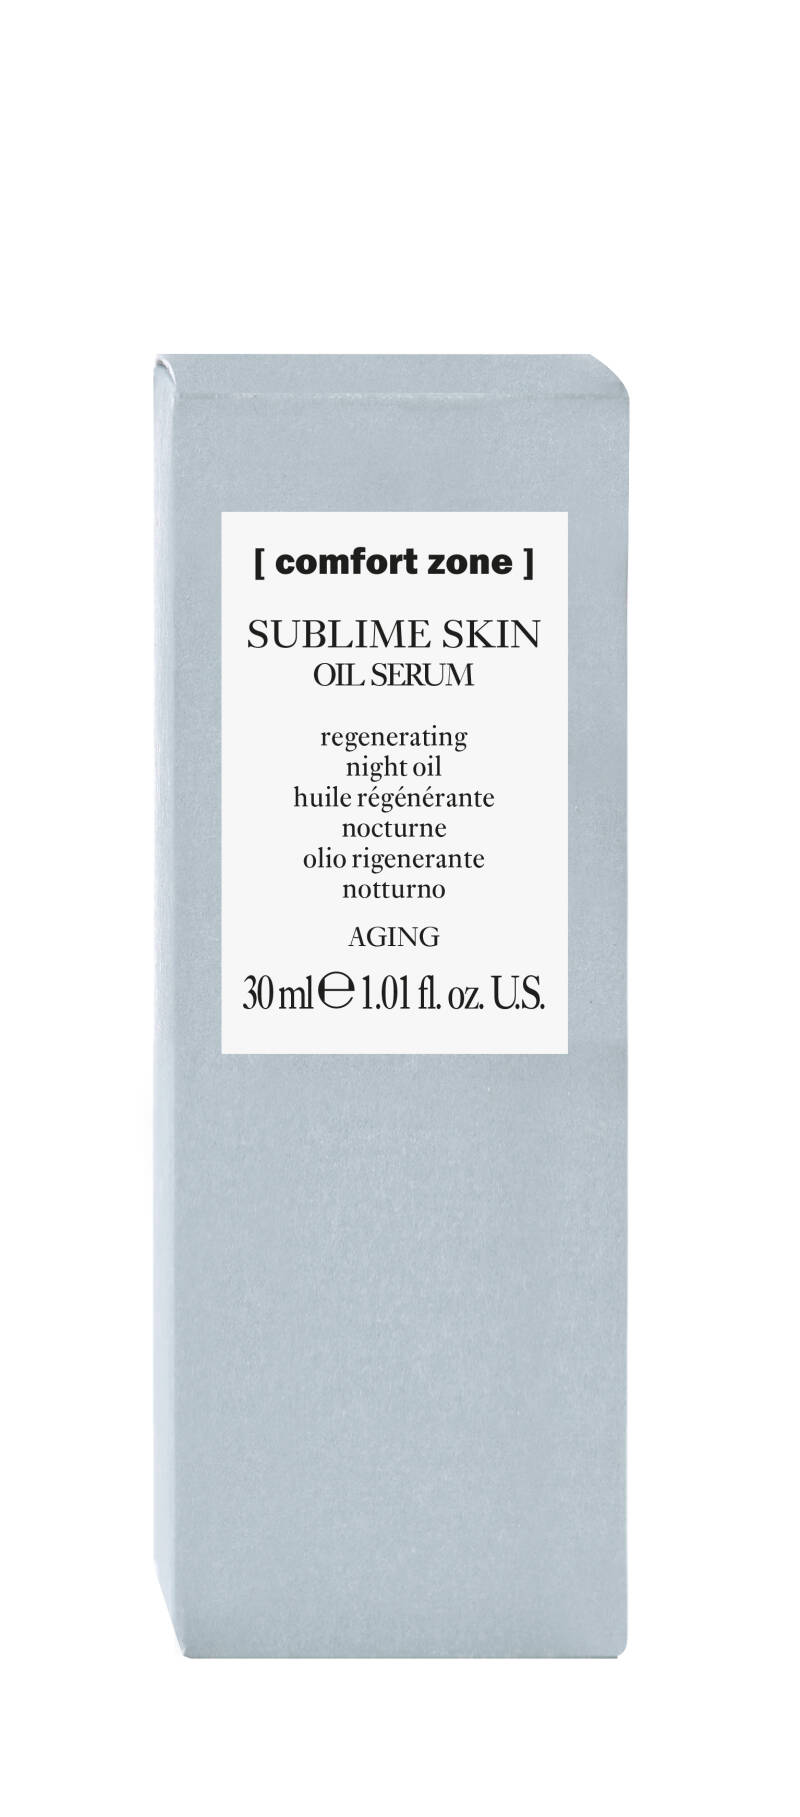 Sublime Skin oil serum